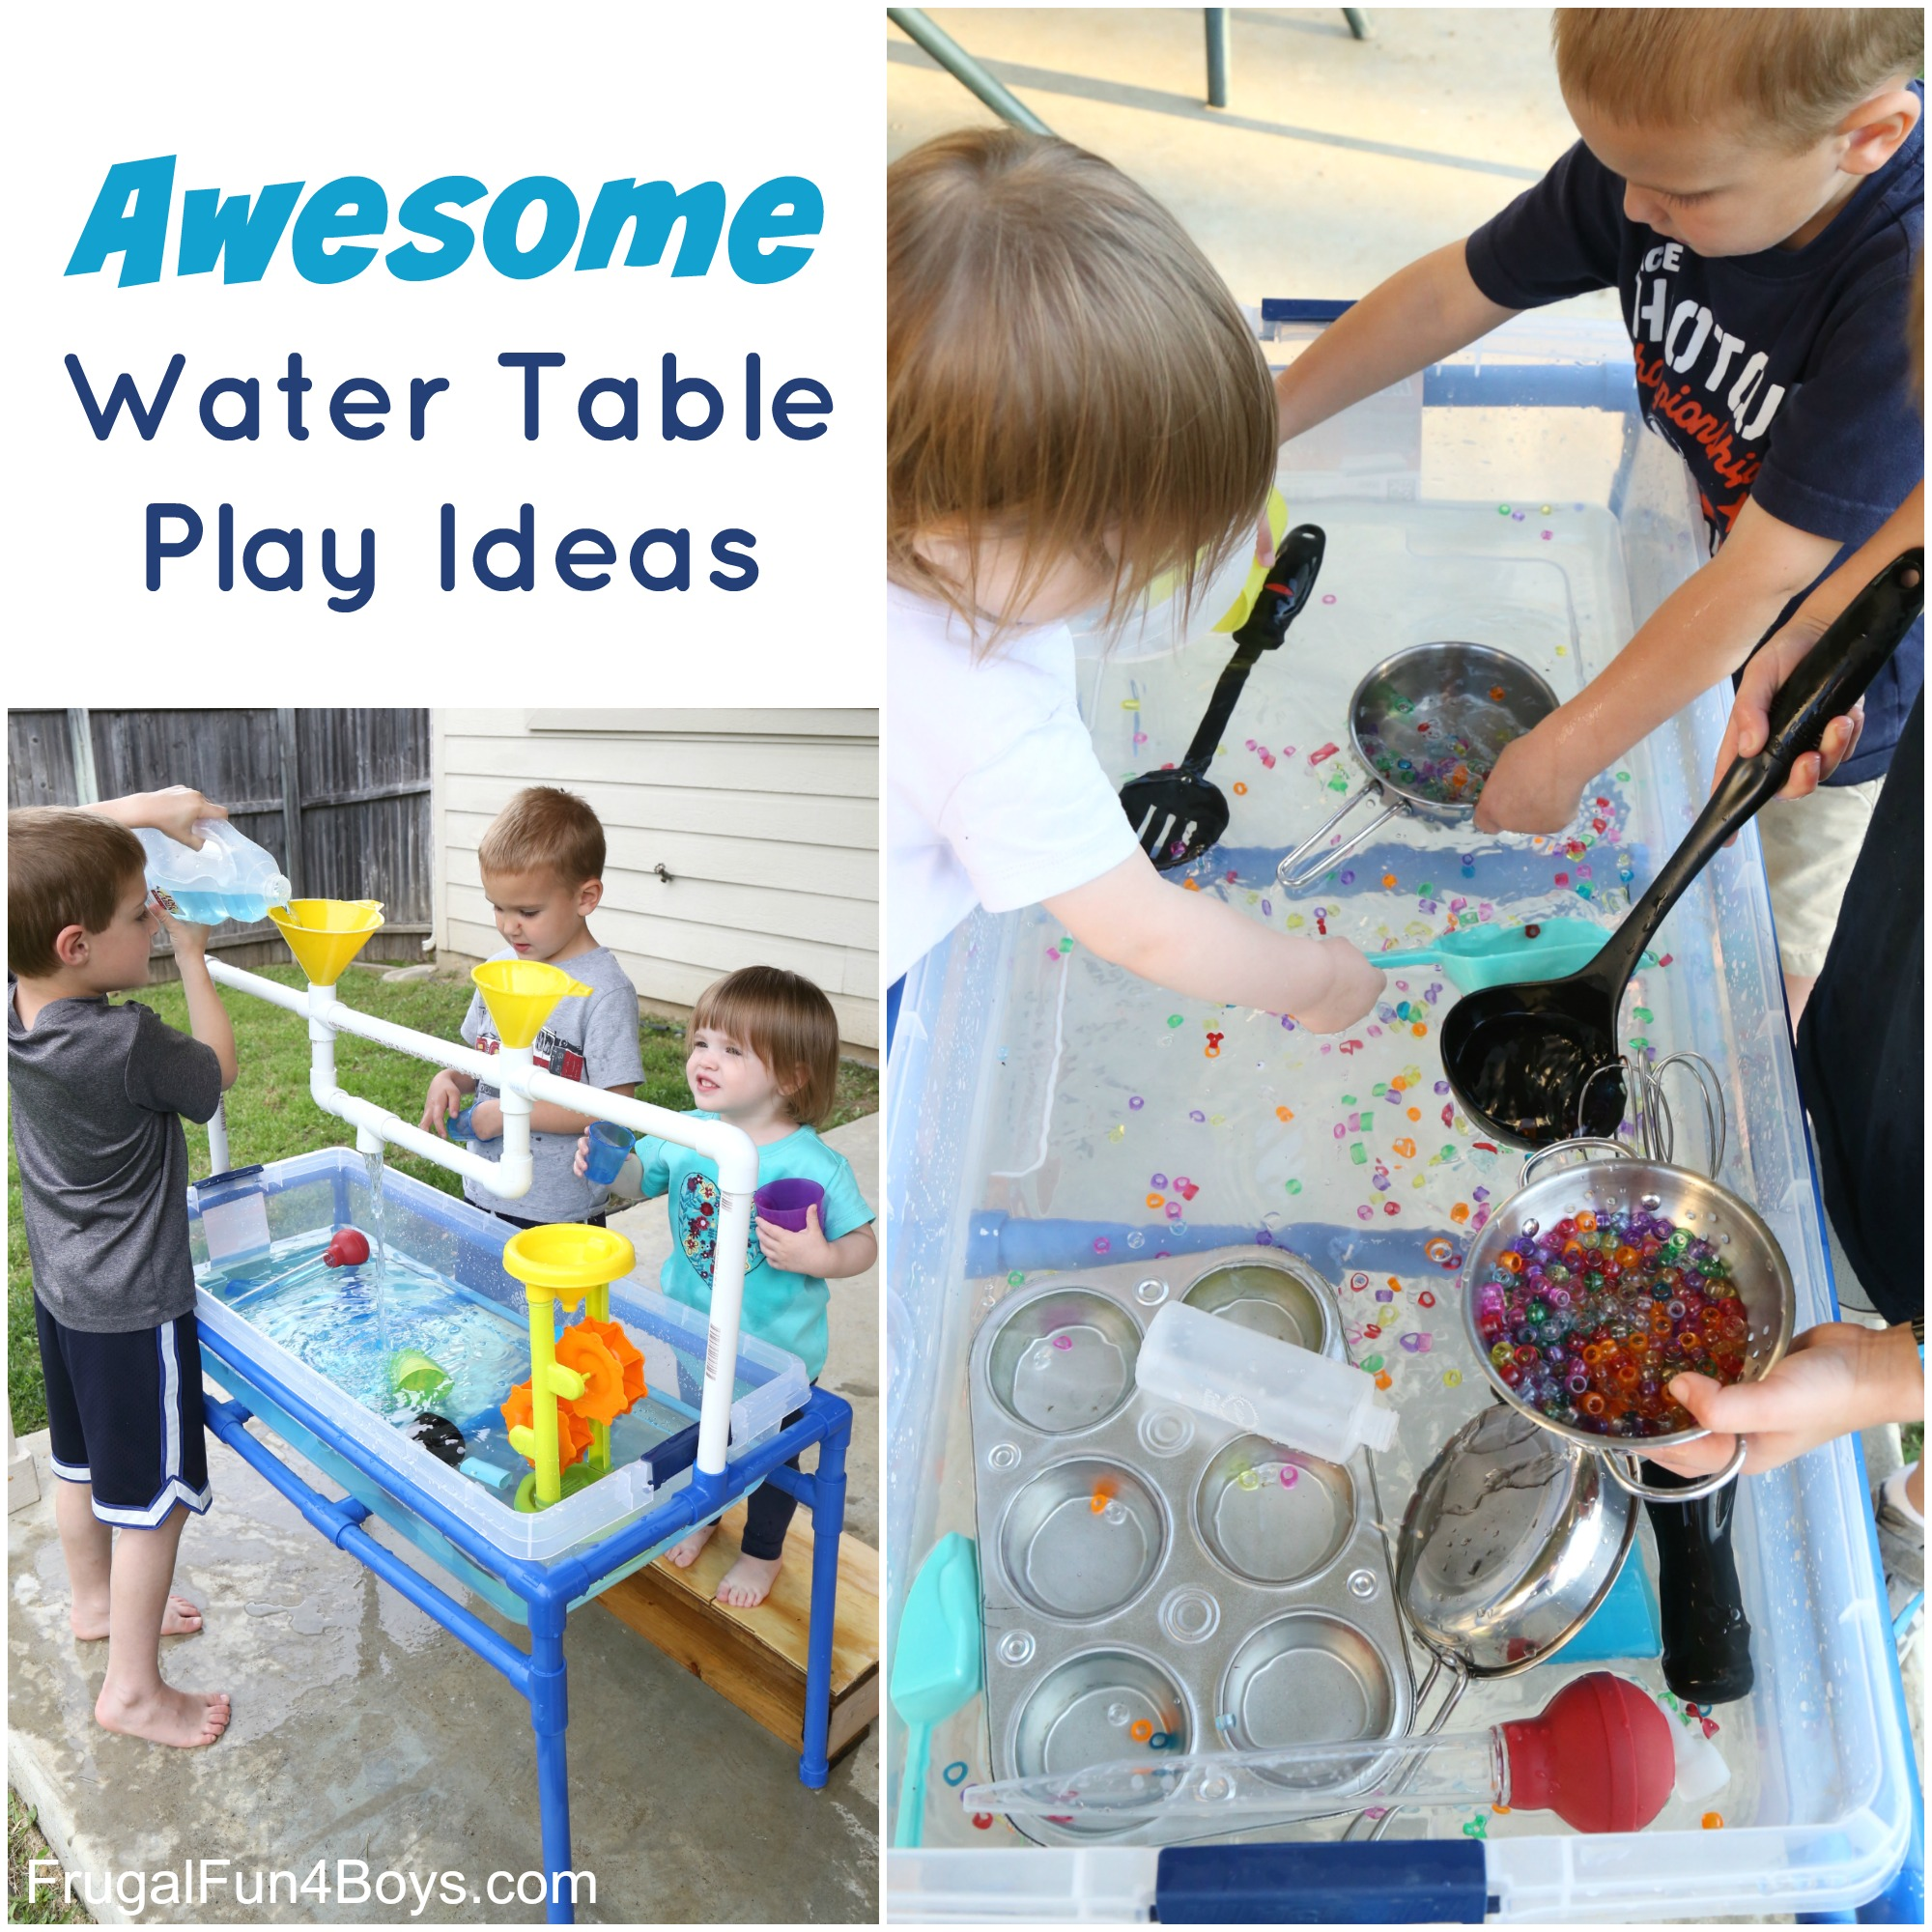 Awesome Water Table Play Ideas